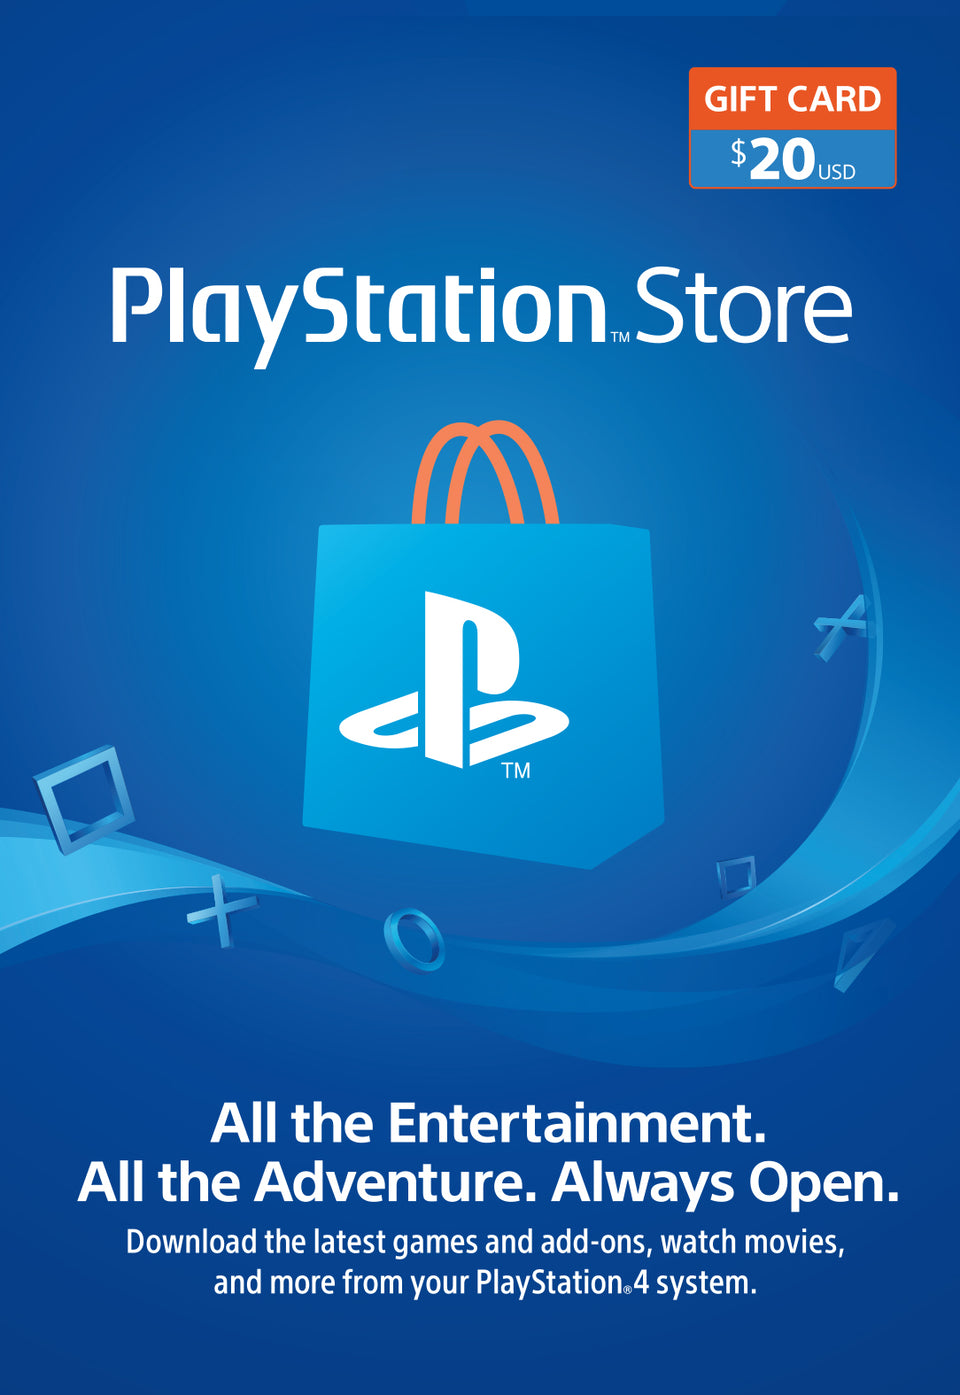 PlayStation Store Gift Card [Digital Code]